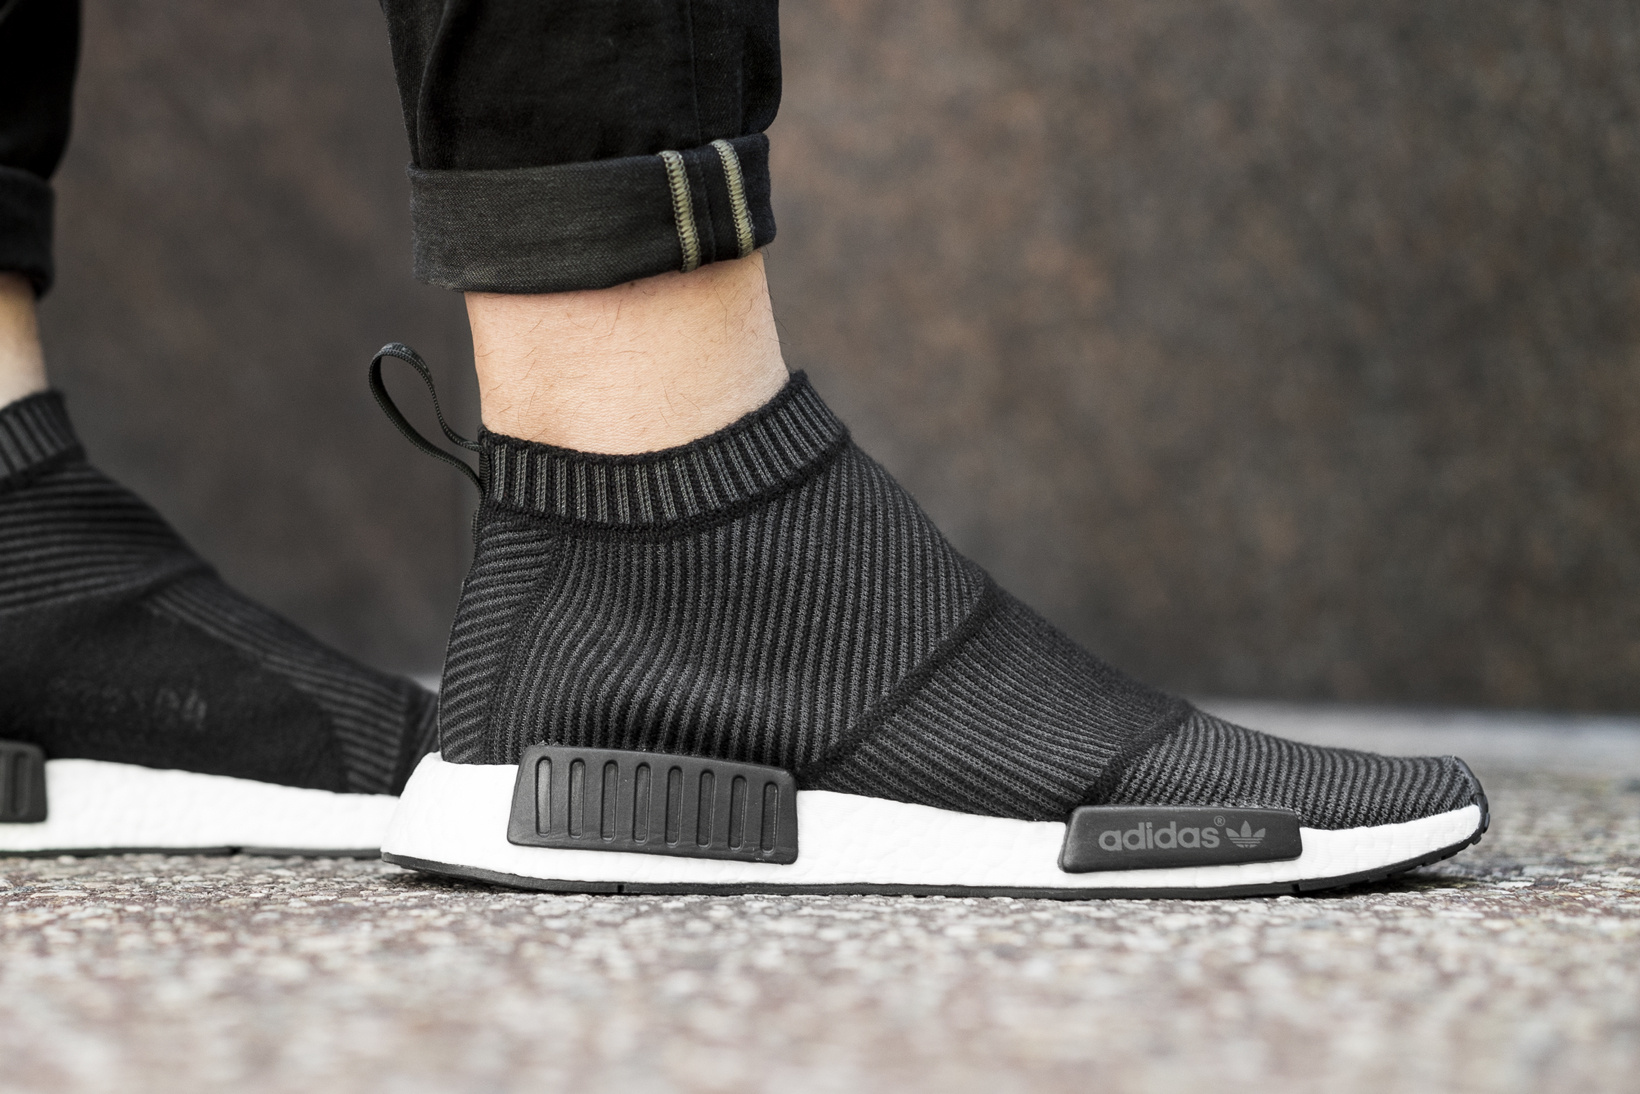 c5be4fe4e Adidas NMD City Sock Black White On Feet 01